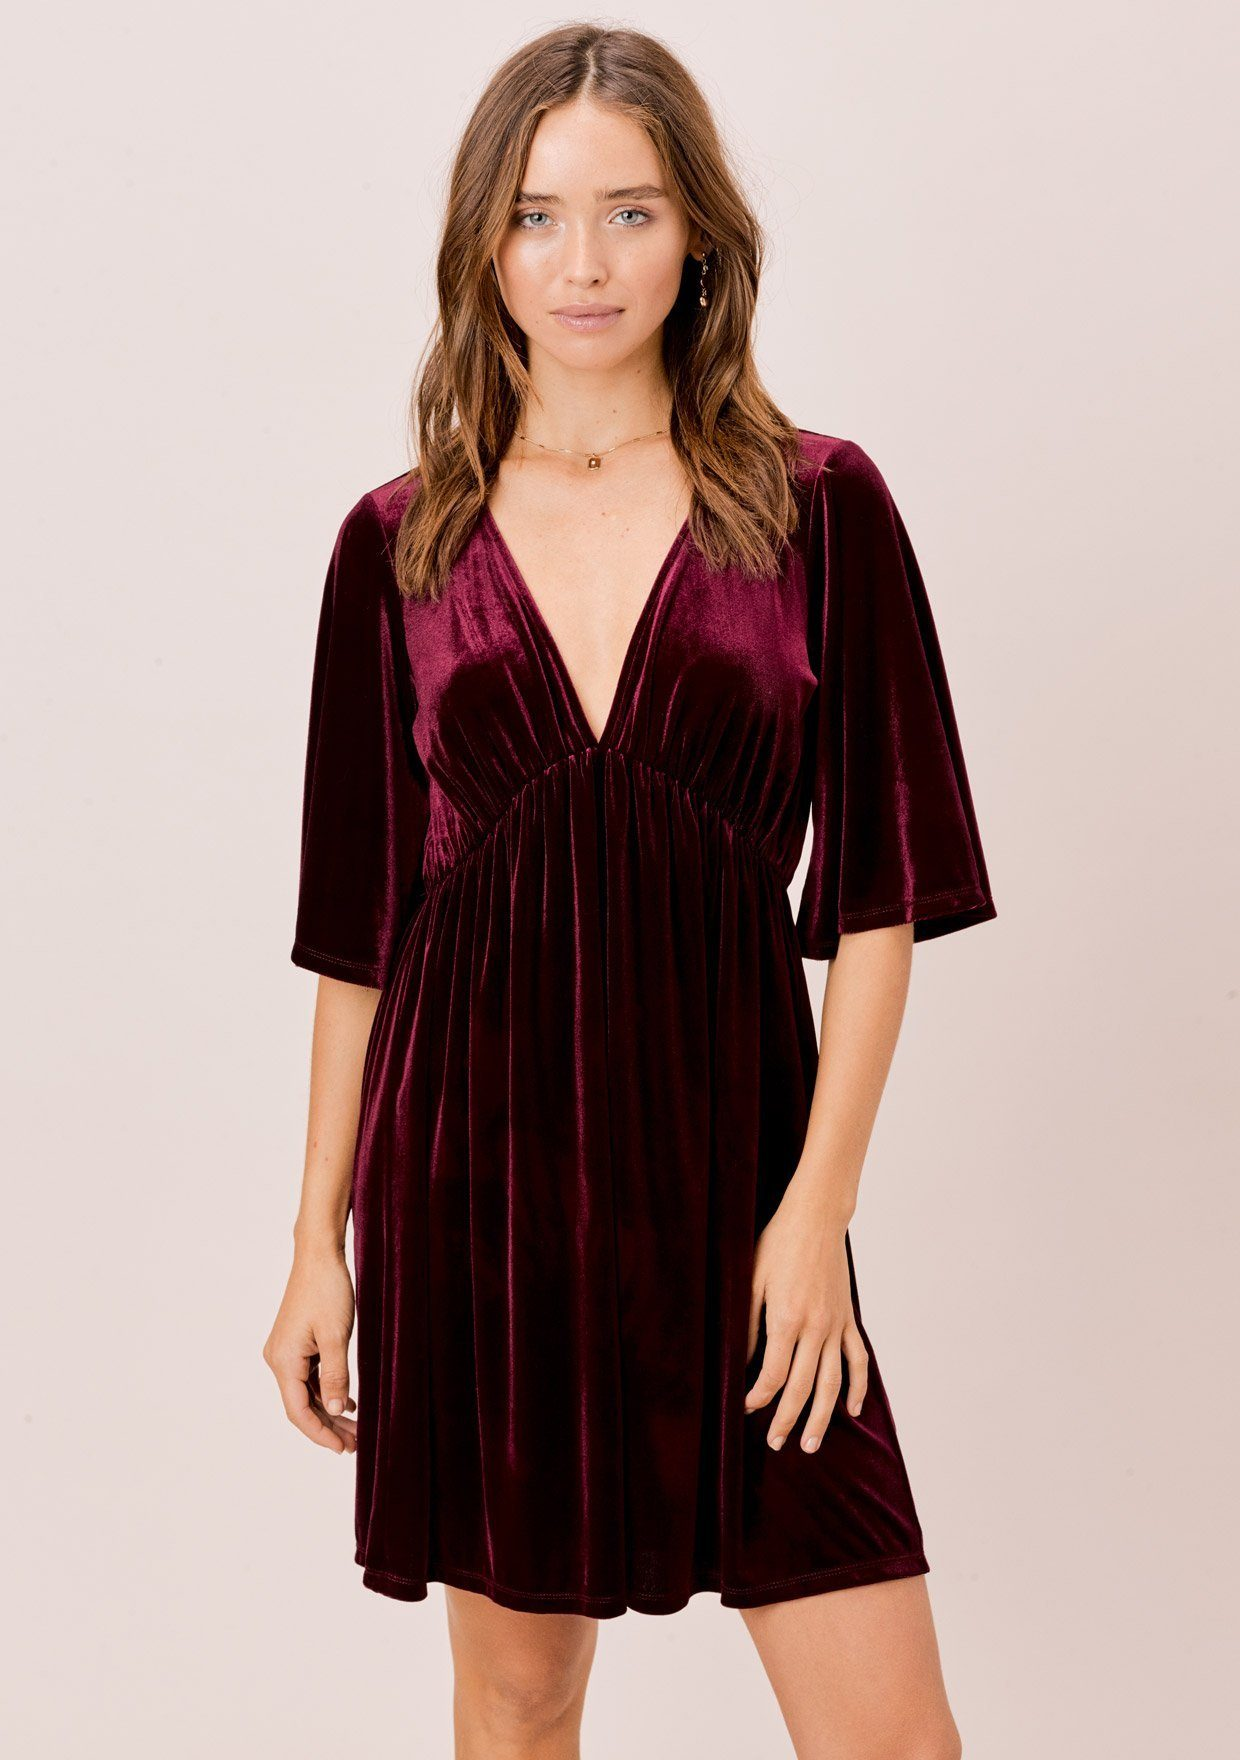 [Color: Wine] Lovestitch wine gorgeous & soft, velvet mini dress with deep V-neckline and empire waist.